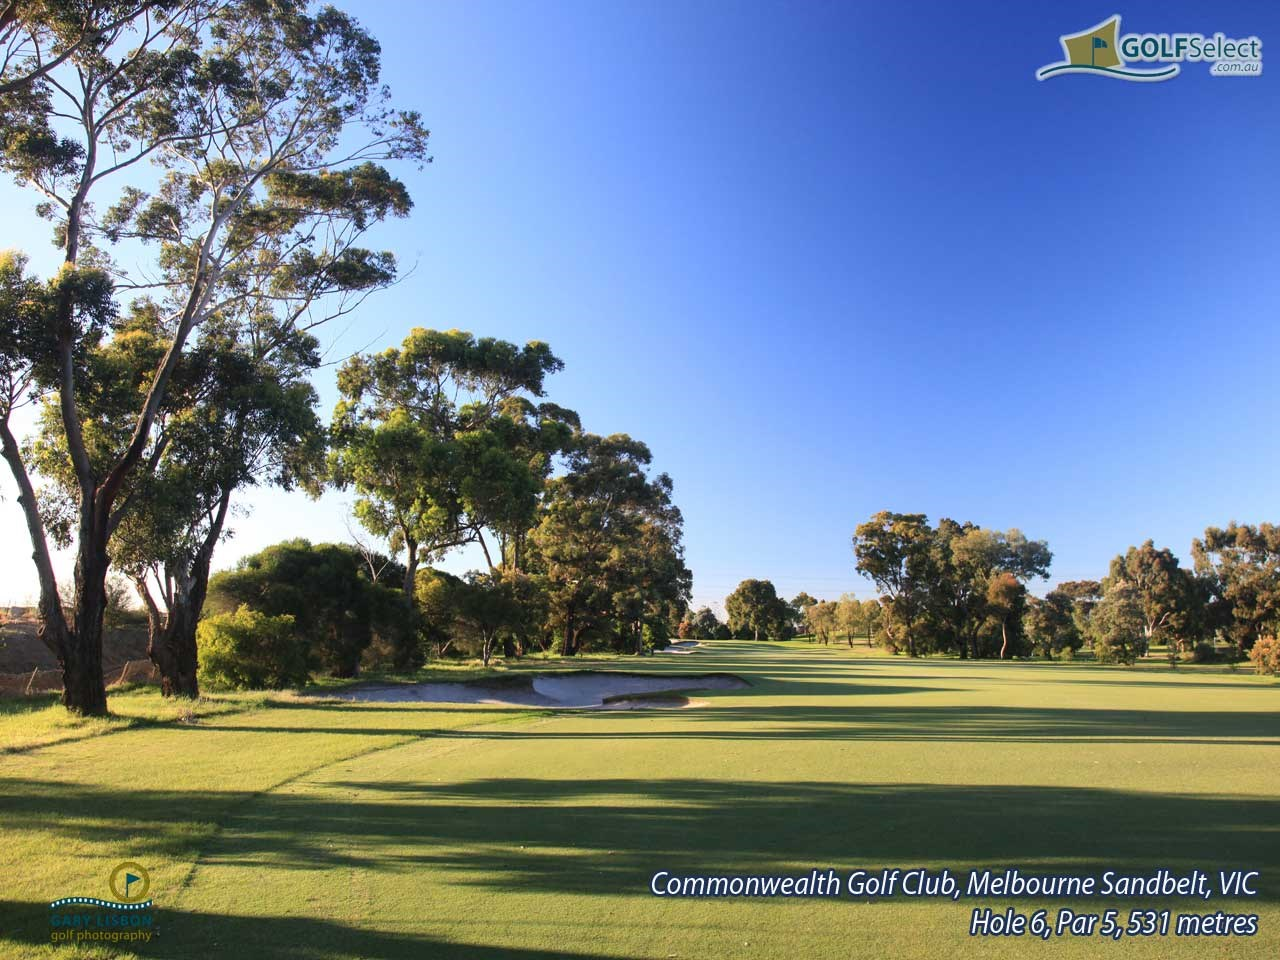 Commonwealth Golf Club Hole 6, Par 5, 531 metres